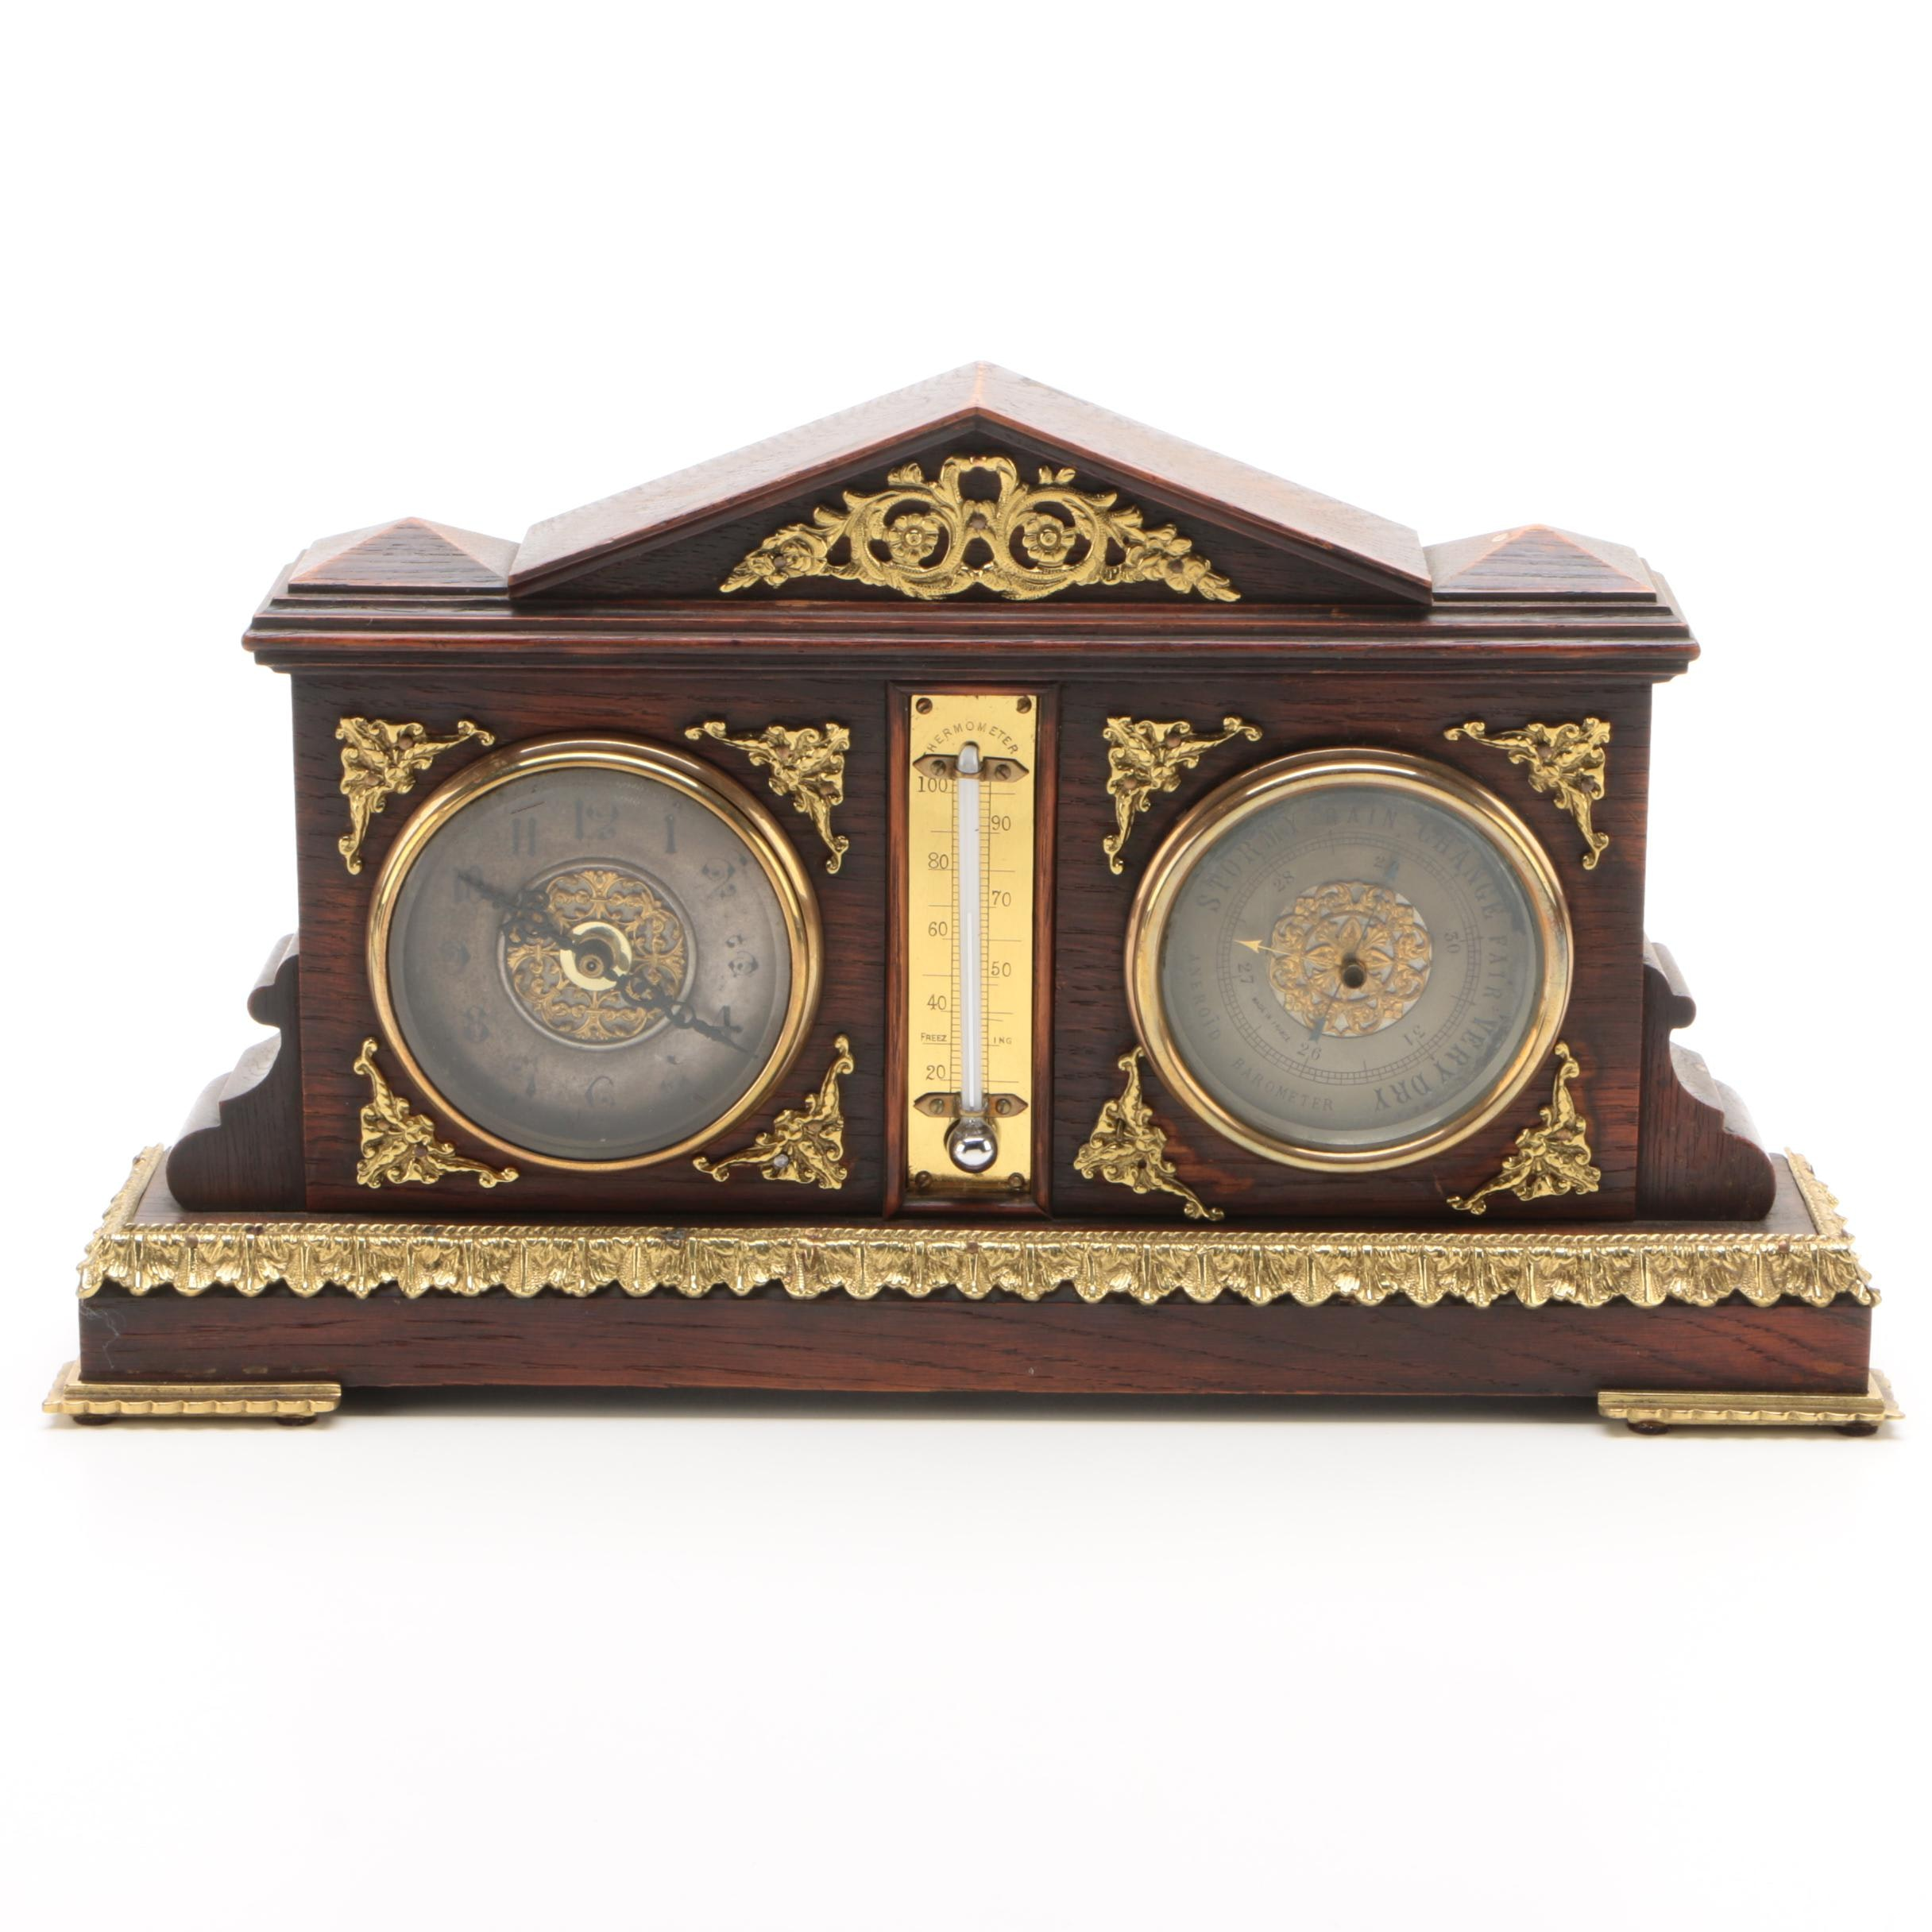 Oak Case Shelf Clock with Mercury Thermometer and Barometer, Late 19th Century